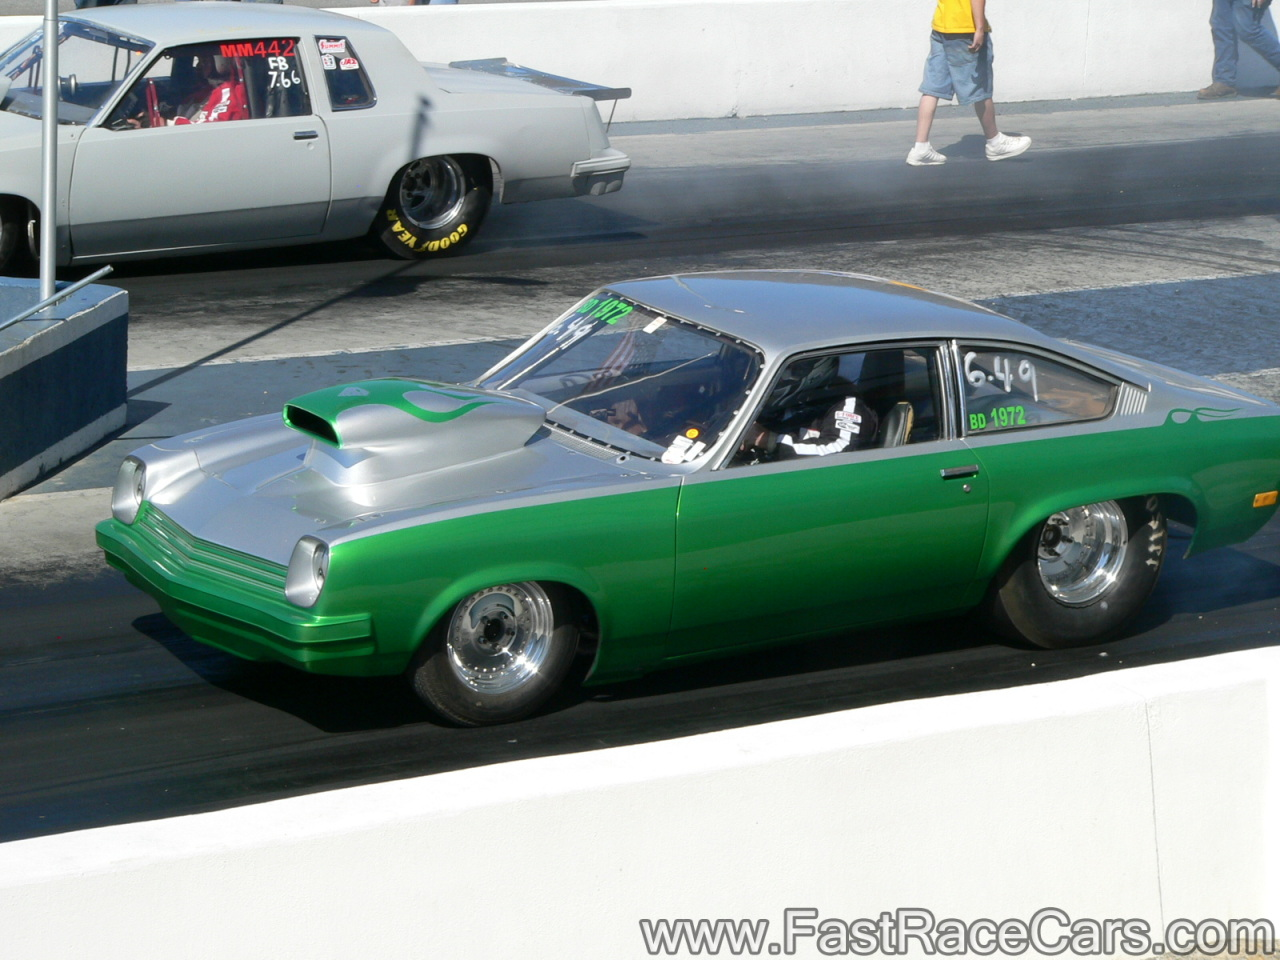 Drag Race Cars > Vegas > Picture of GREEN and SILVER VEGA